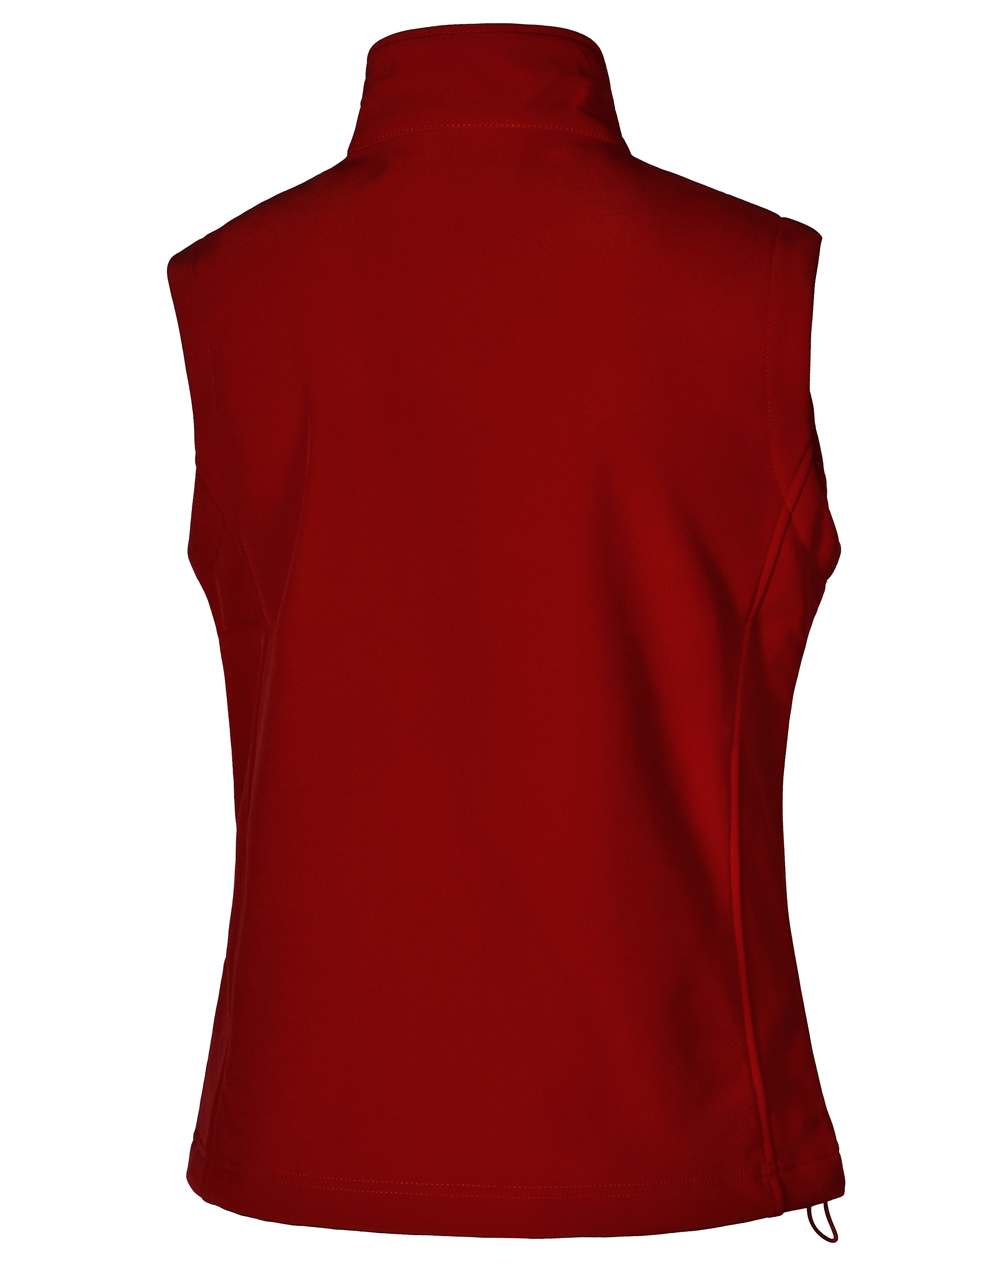 https://s3-ap-southeast-1.amazonaws.com/ws-imgs/OUTWEAR/JK26_Red_BACK_l.jpg